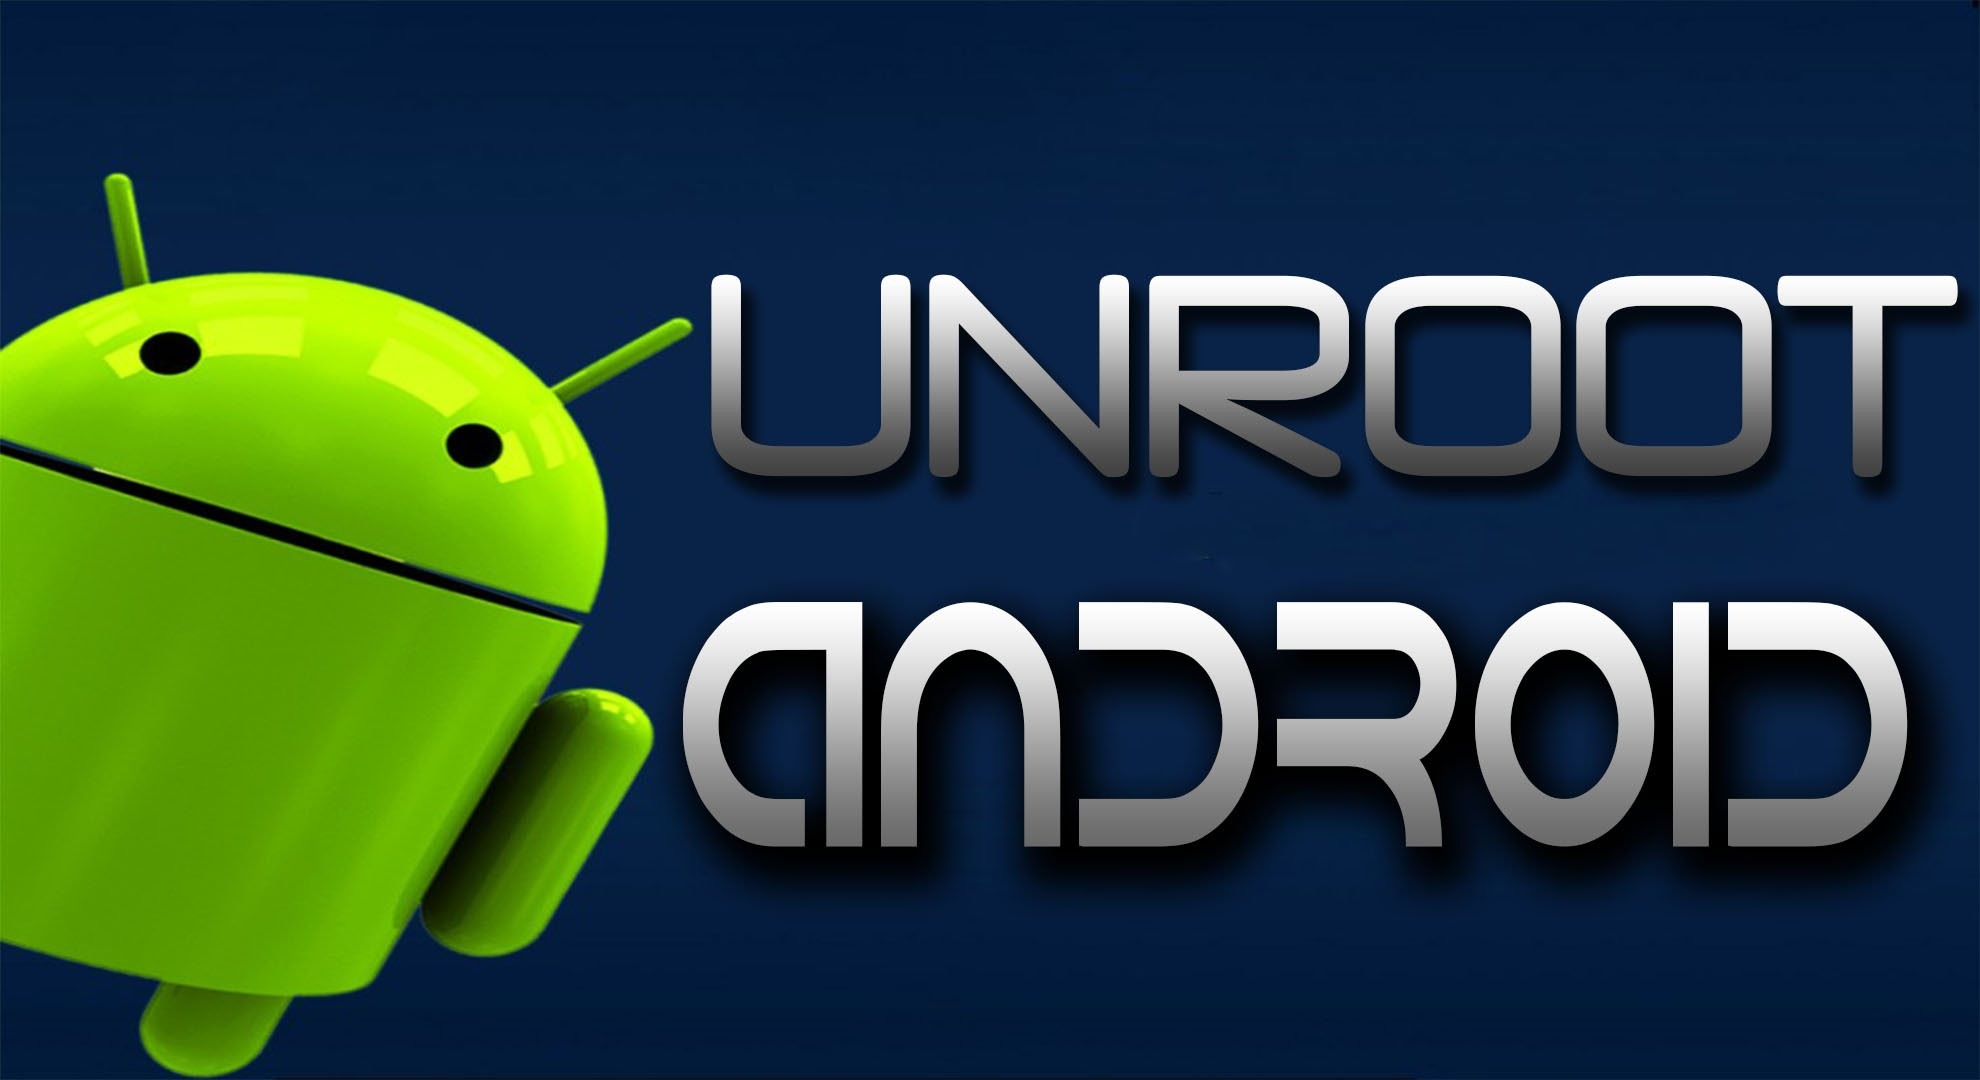 [Tutorial] How To Unroot Android Phone Using Kingroot App